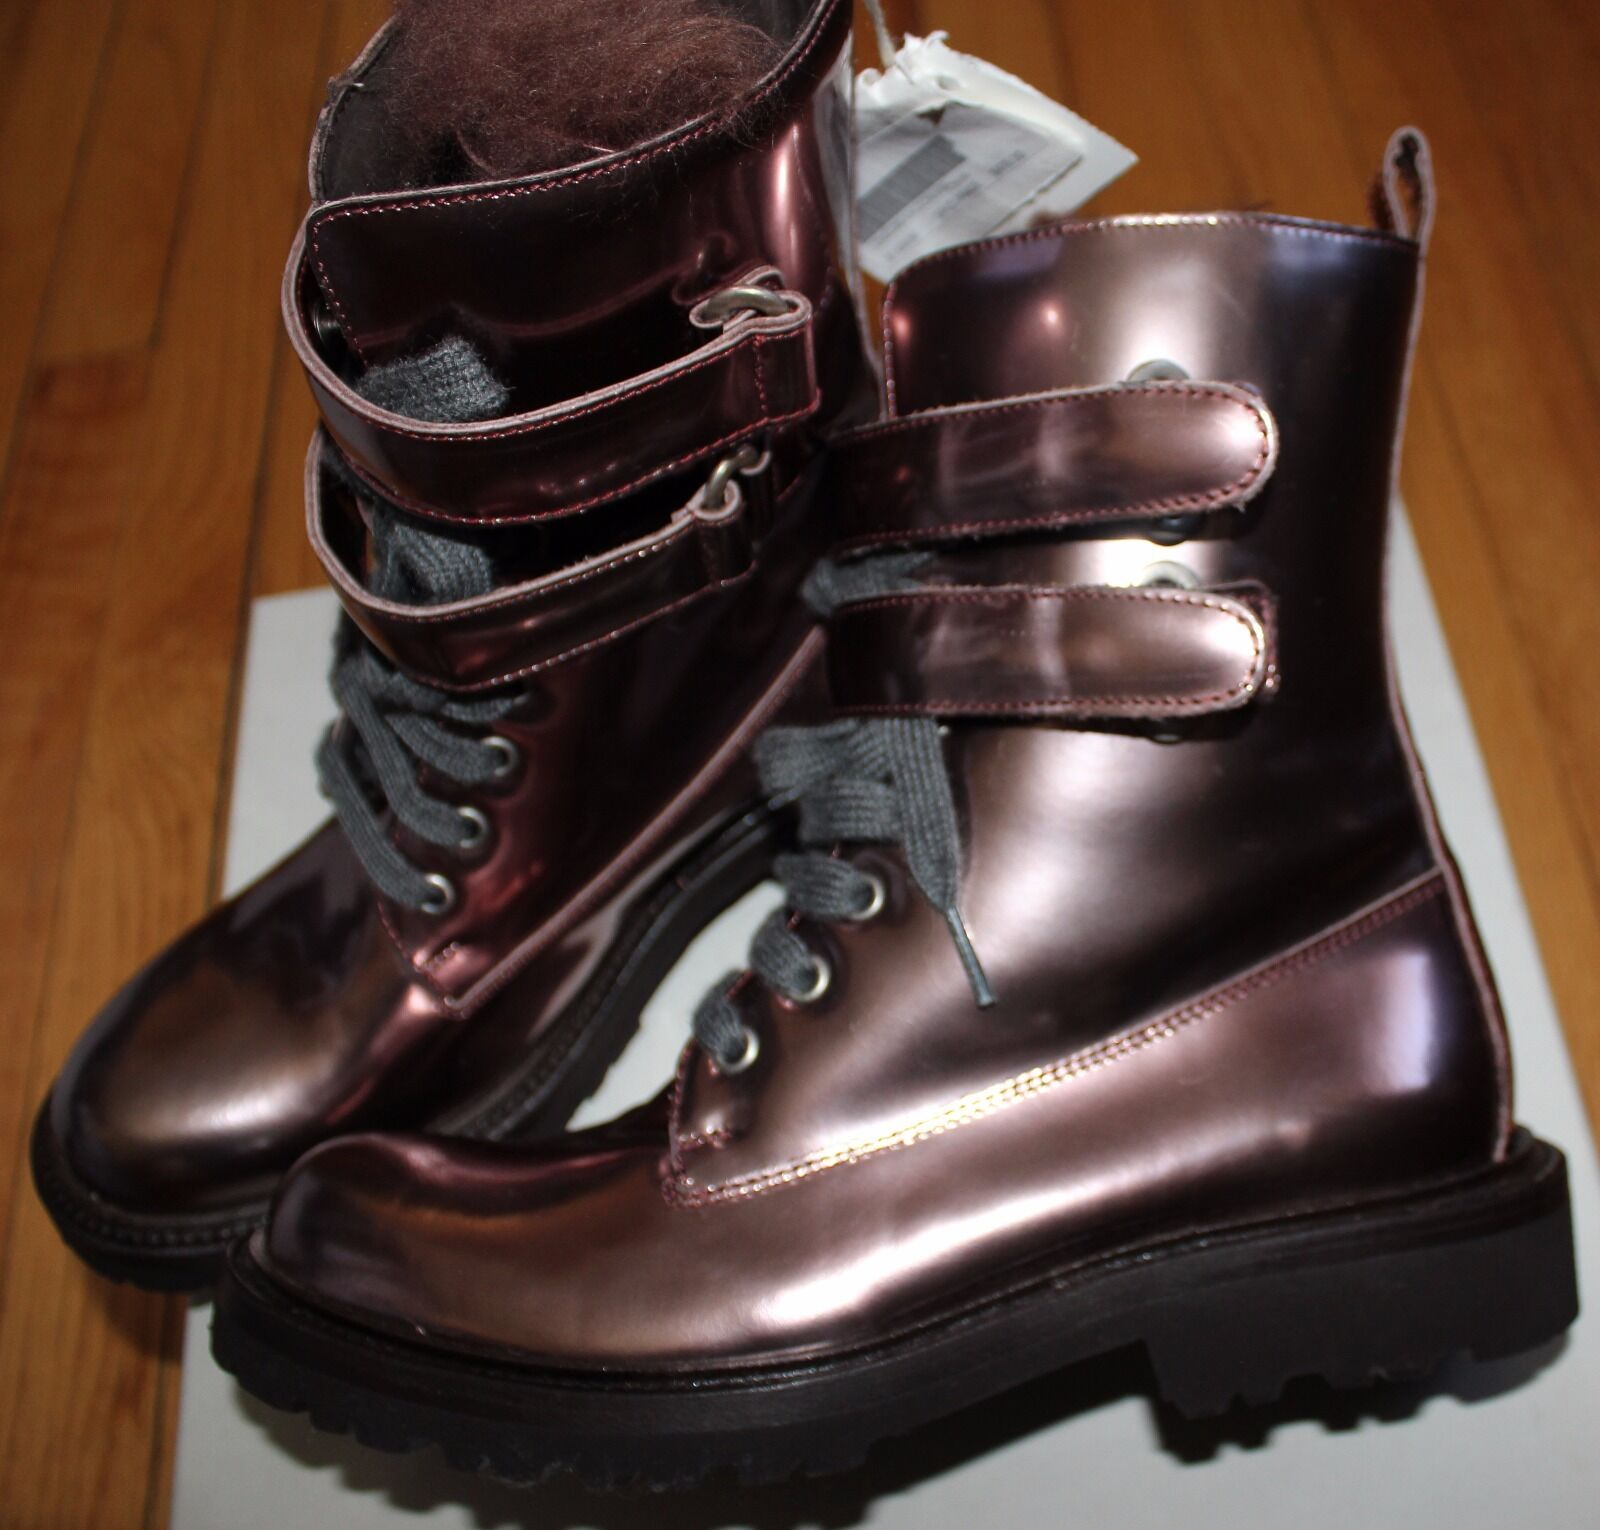 AUTHENTIC  1630 BRUNELLO CUCINELLI METALLIC COPPER Stiefel Stiefel COPPER SZ 37 EU/ 7 US ded607